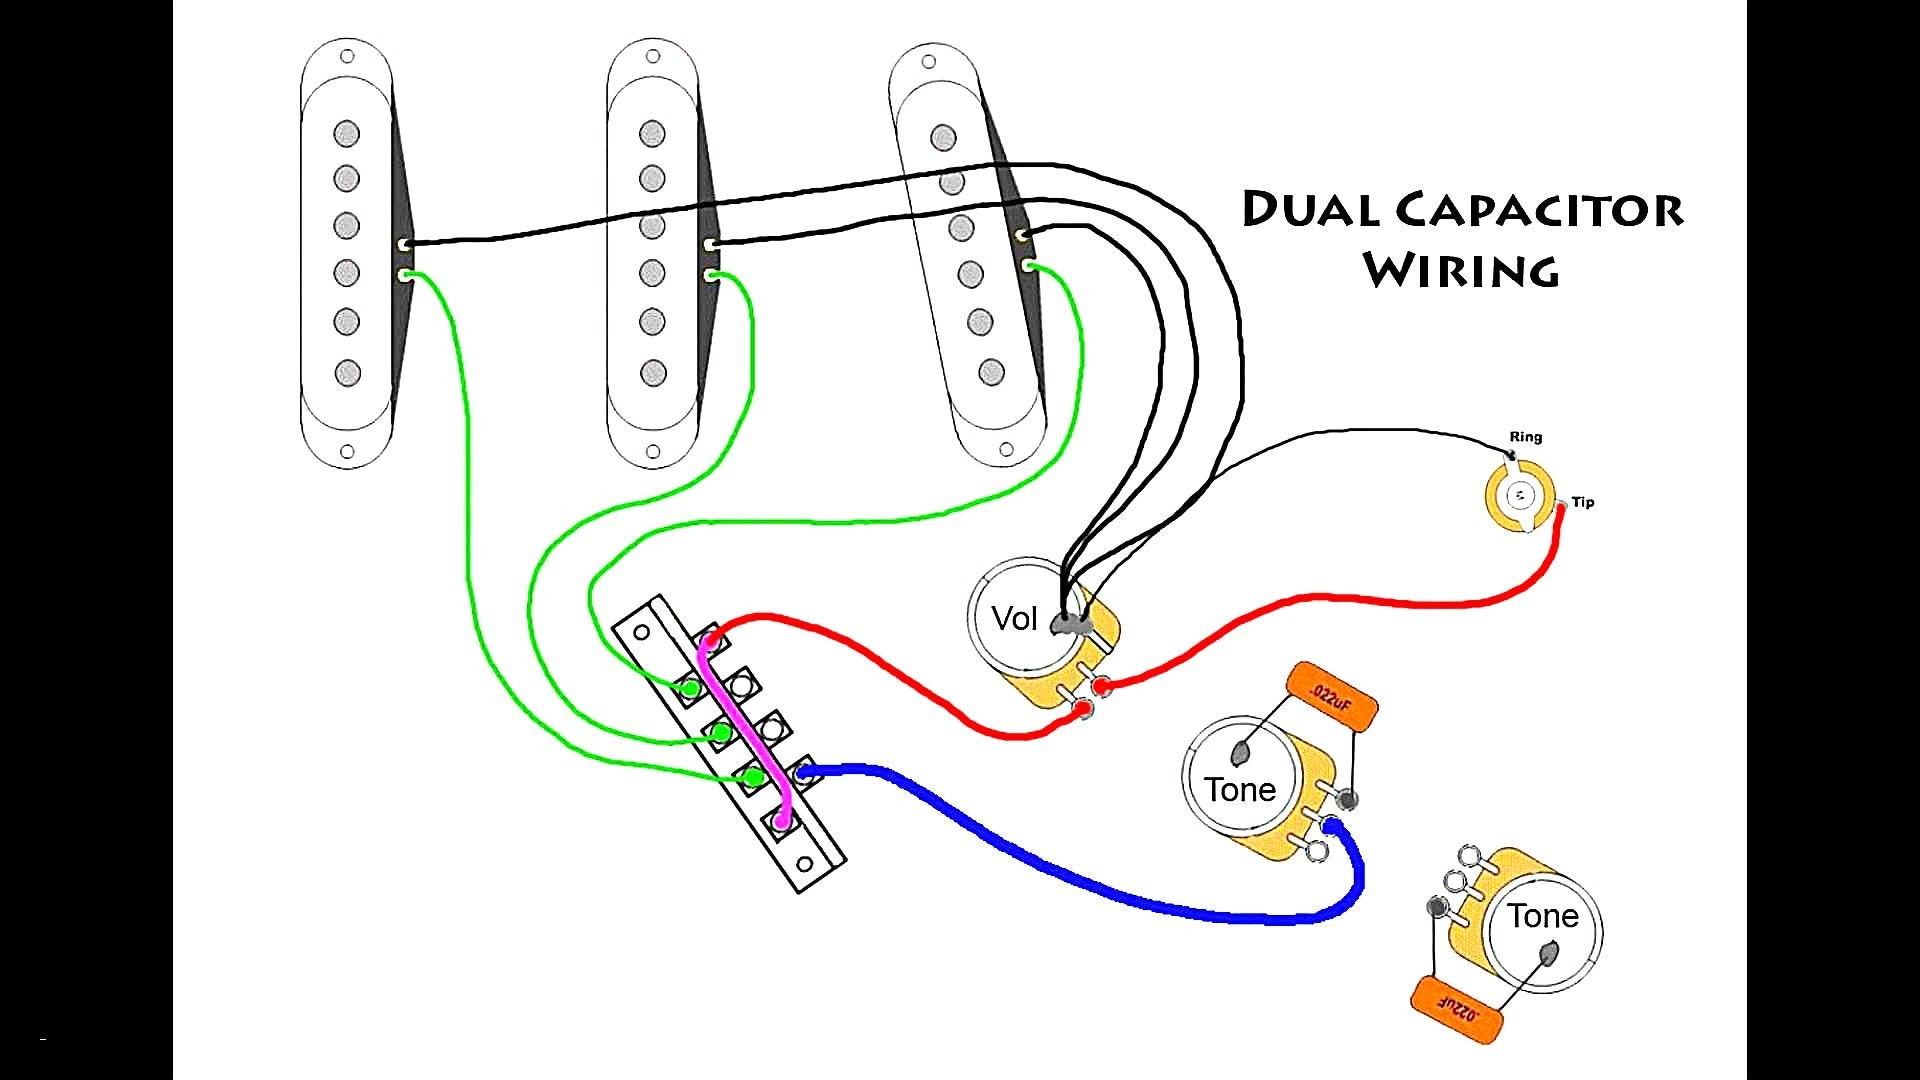 Fender American Deluxe Stratocaster Hss Wiring Diagram Rate Guitar - Fender Hss Wiring Diagram